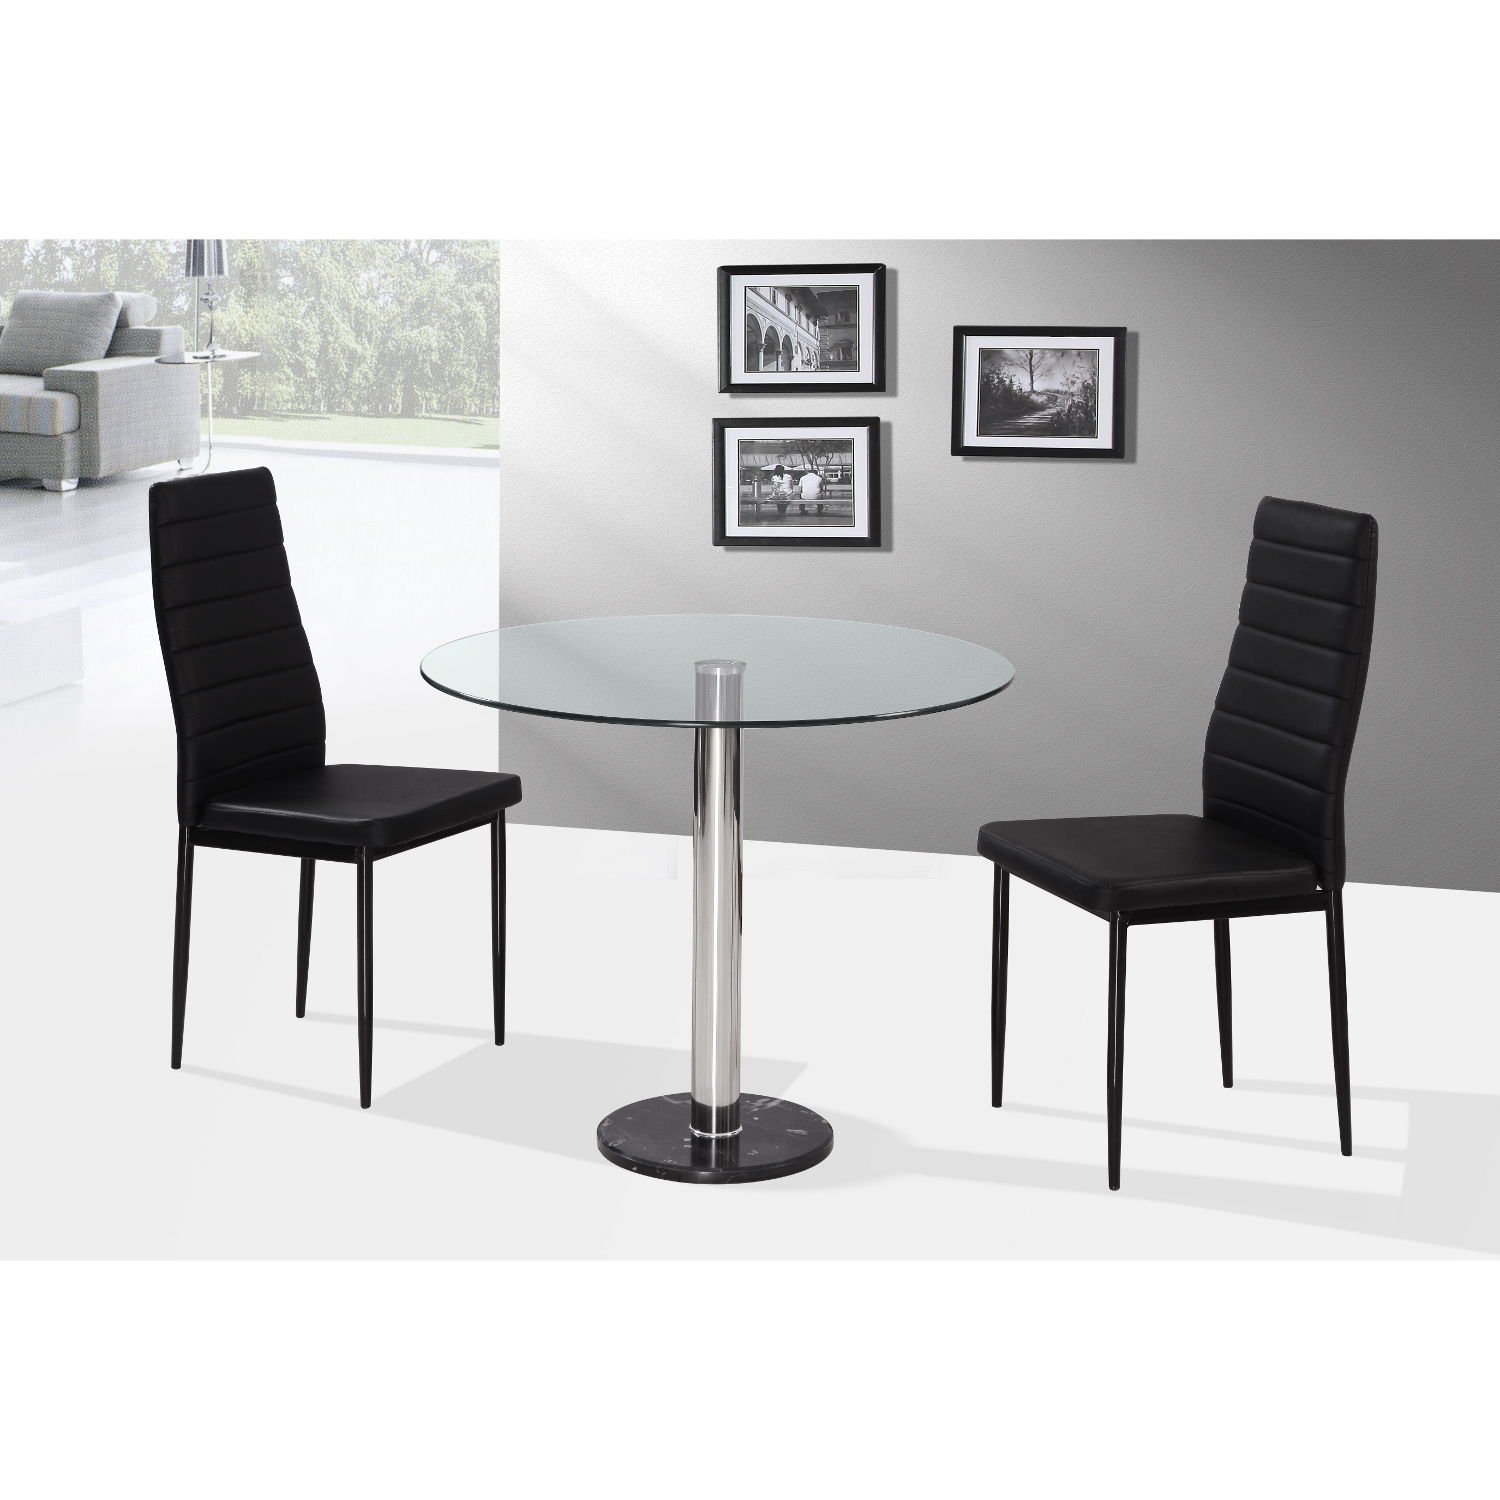 Gloss dining set table and 2 chairs black by lloyd phillip amp delric - Romford 90cm Round Glass Dining Table With 2 Chairs In Black Two Person Dining Set 2 Dining Chairs Amazon Co Uk Kitchen Home